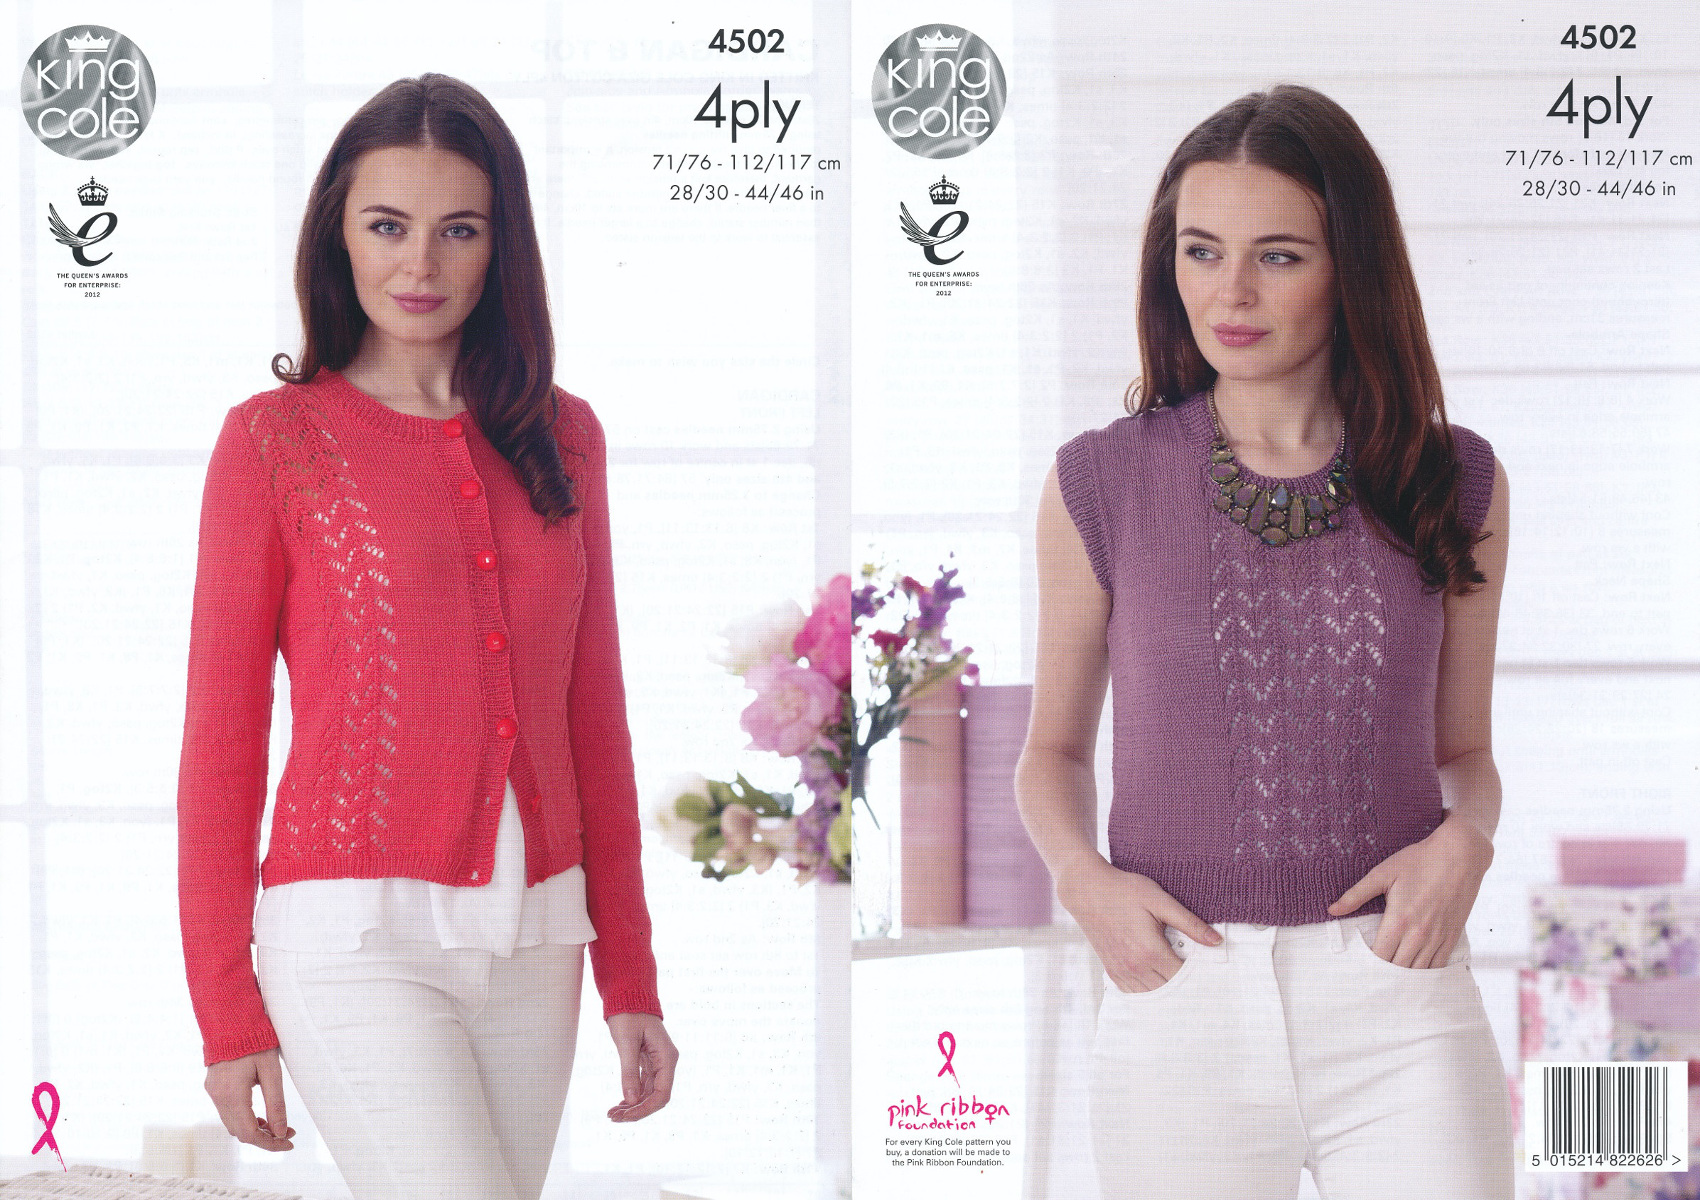 King Cole Ladies 4 Ply Knitting Pattern Womens Lace Effect Cardigan & Top...